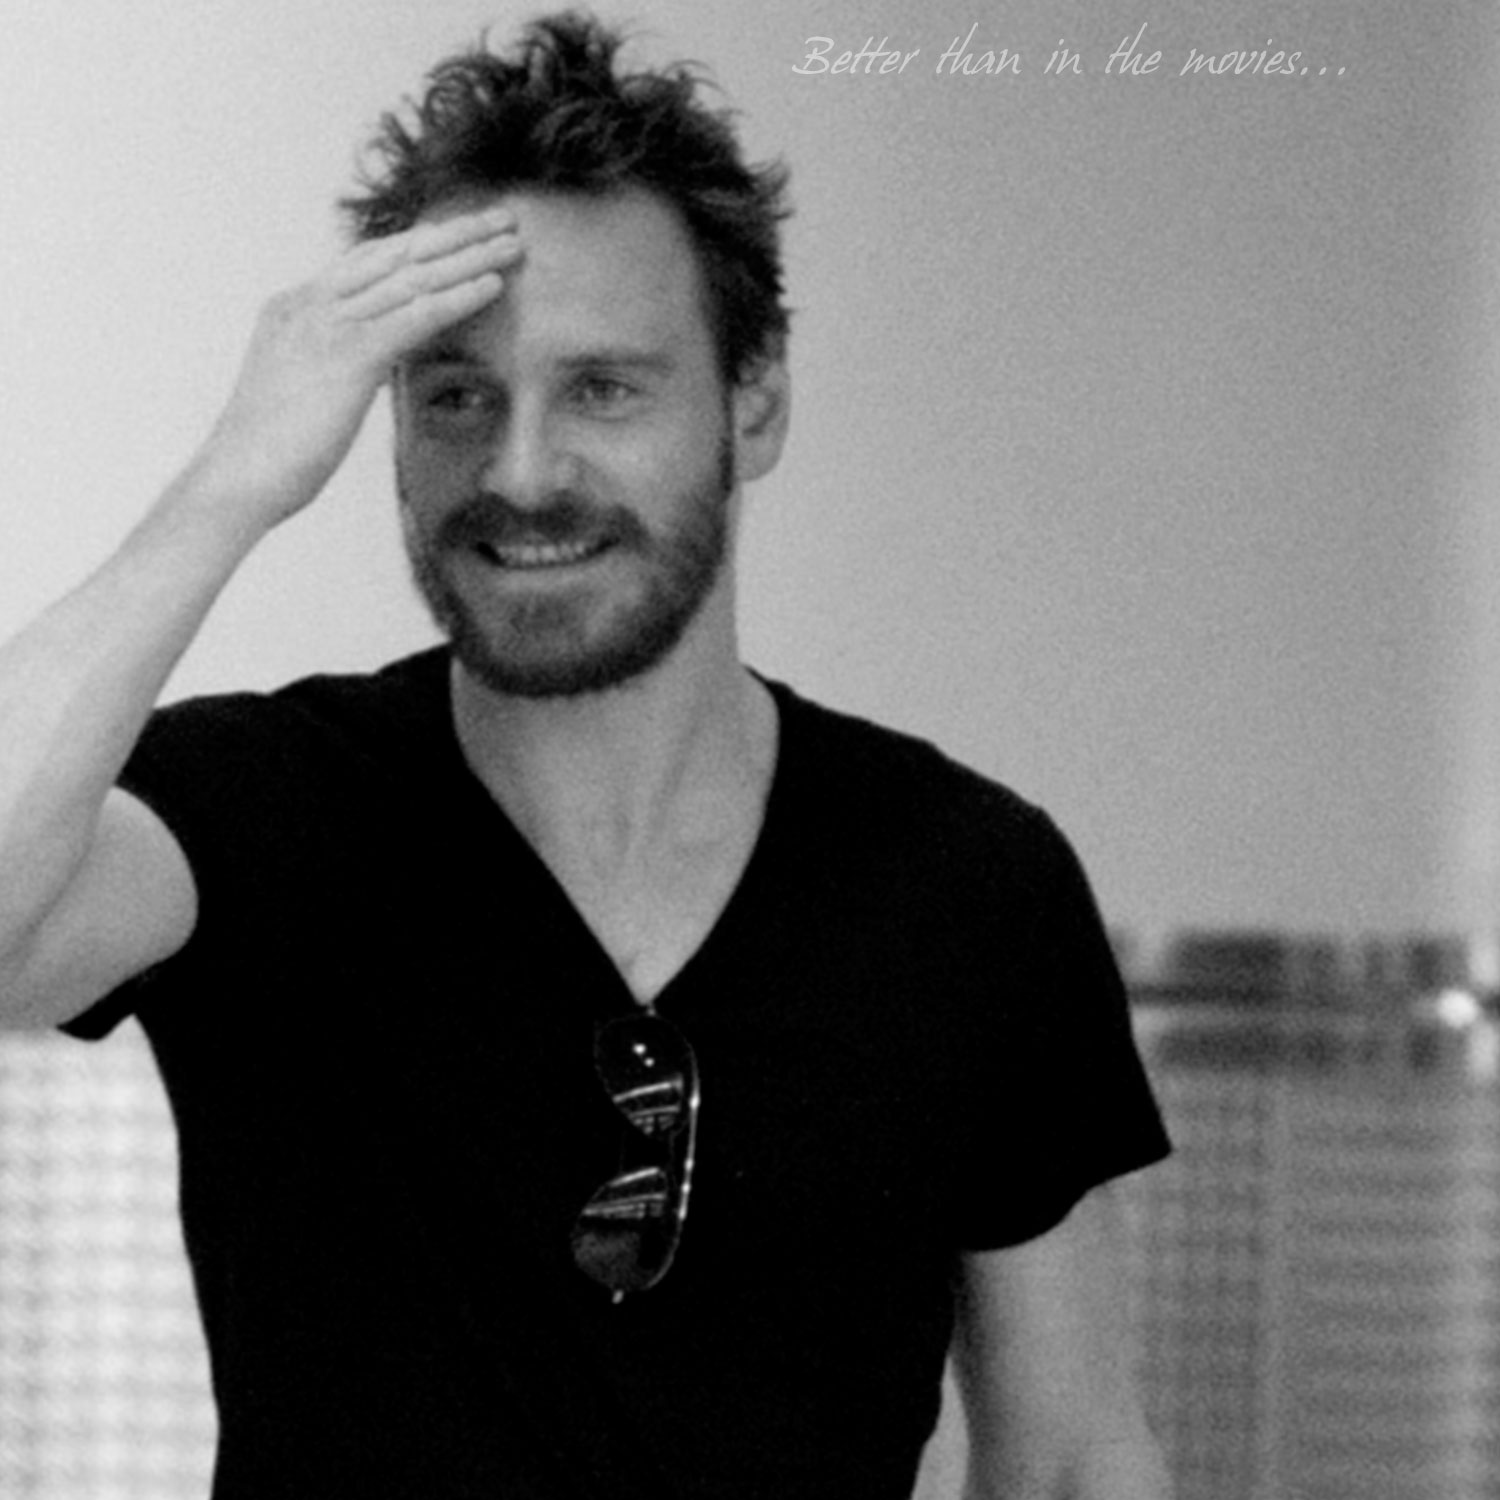 Michael Fassbender: Better than in the Movies... Michael Fassbender